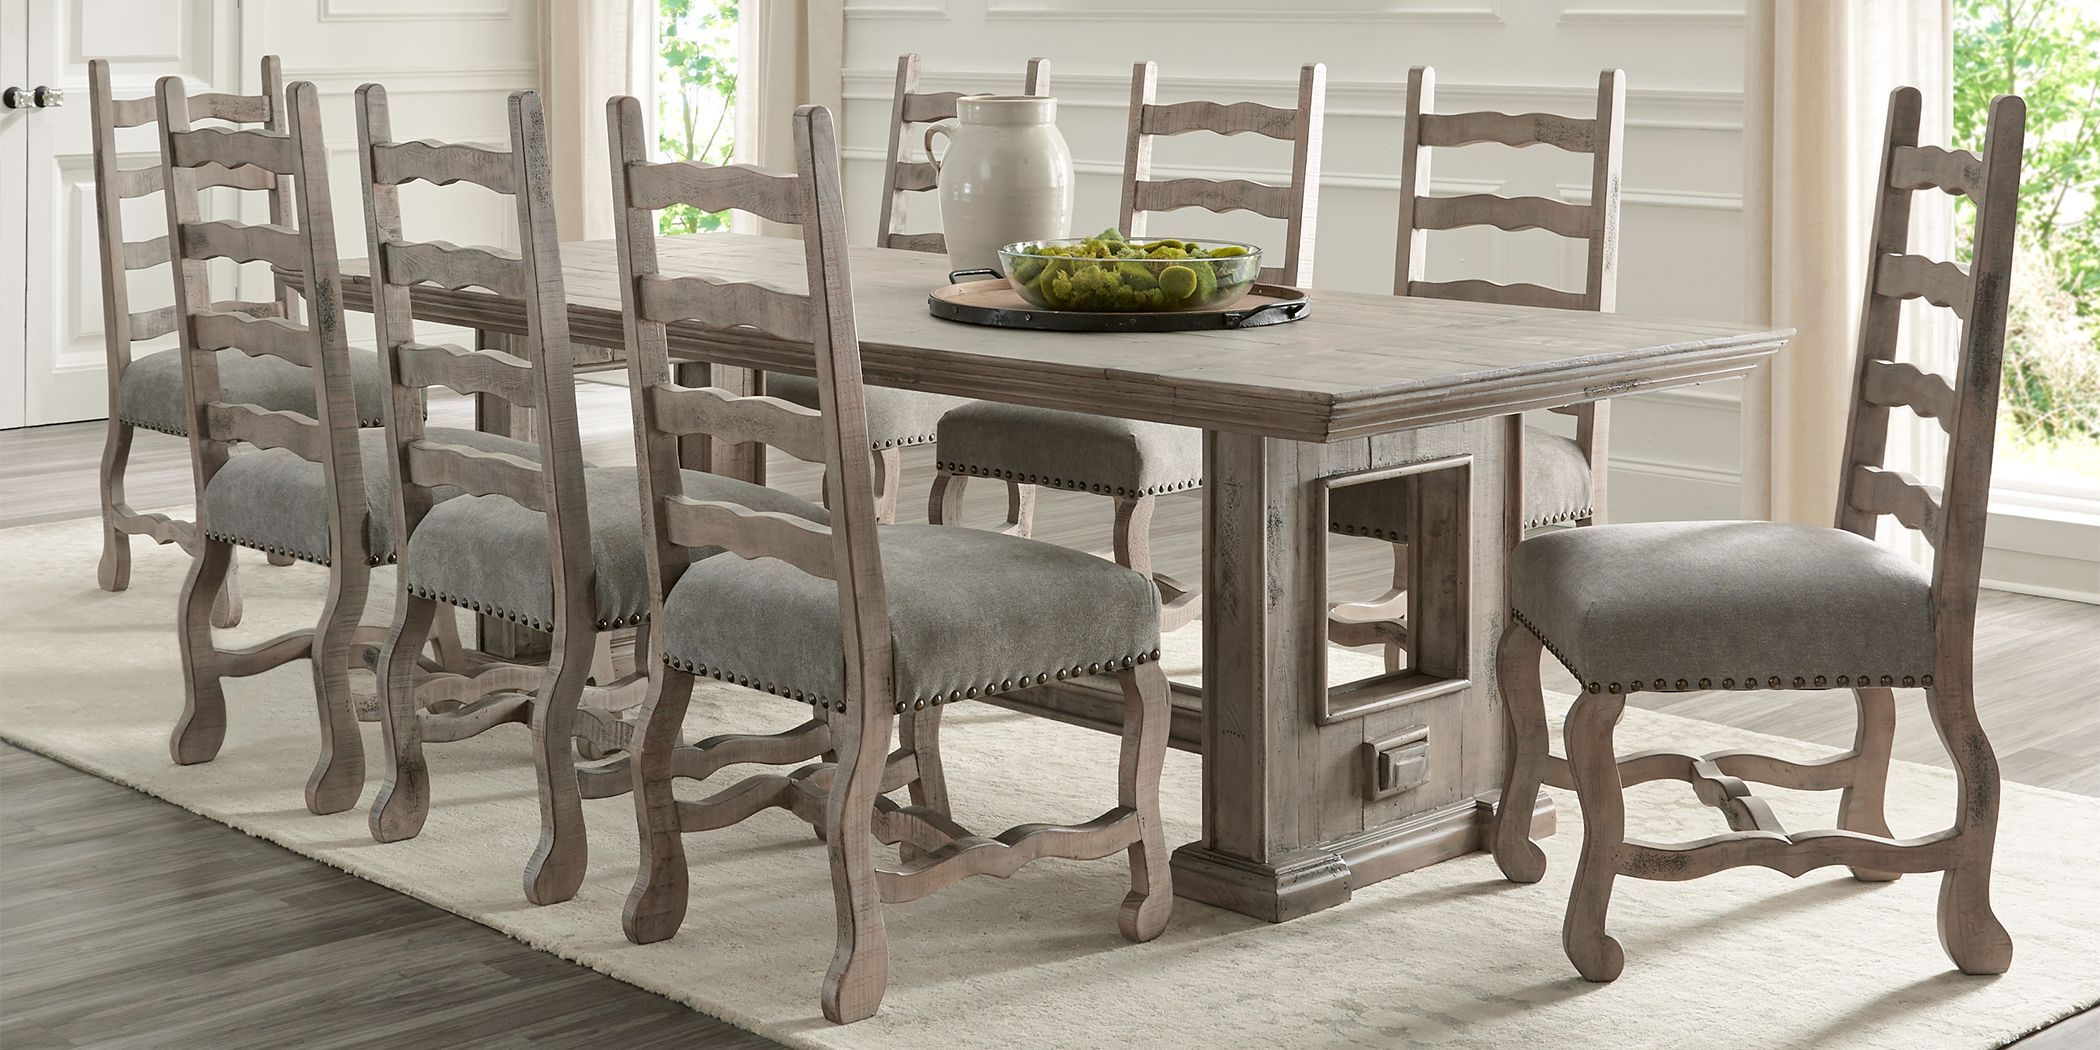 Cindy Crawford Home Pine Manor Brown 5 Pc 102 In Dining Room